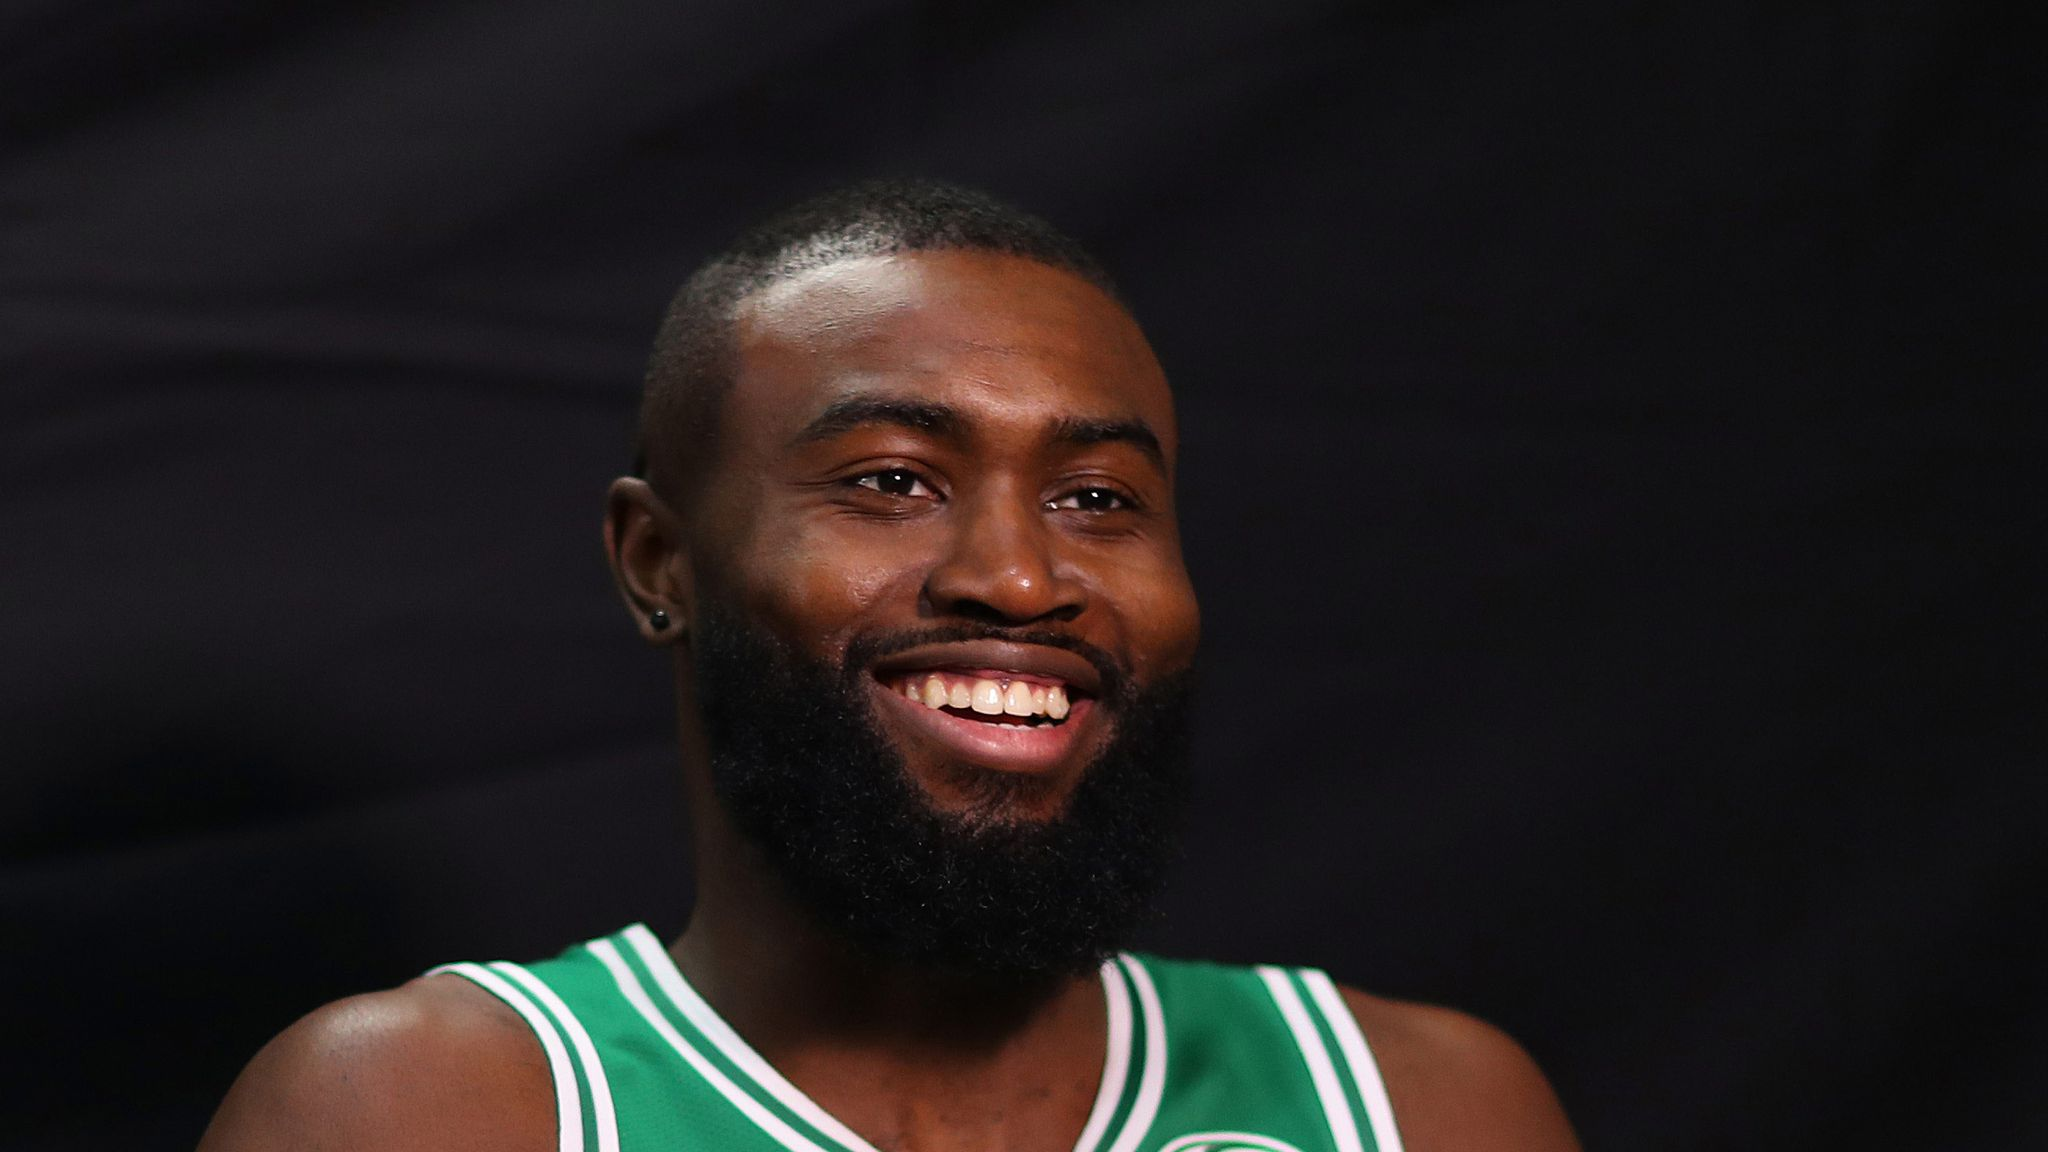 Jaylen Brown cites Boston Celtics player development culture as key factor in him earning contract extension